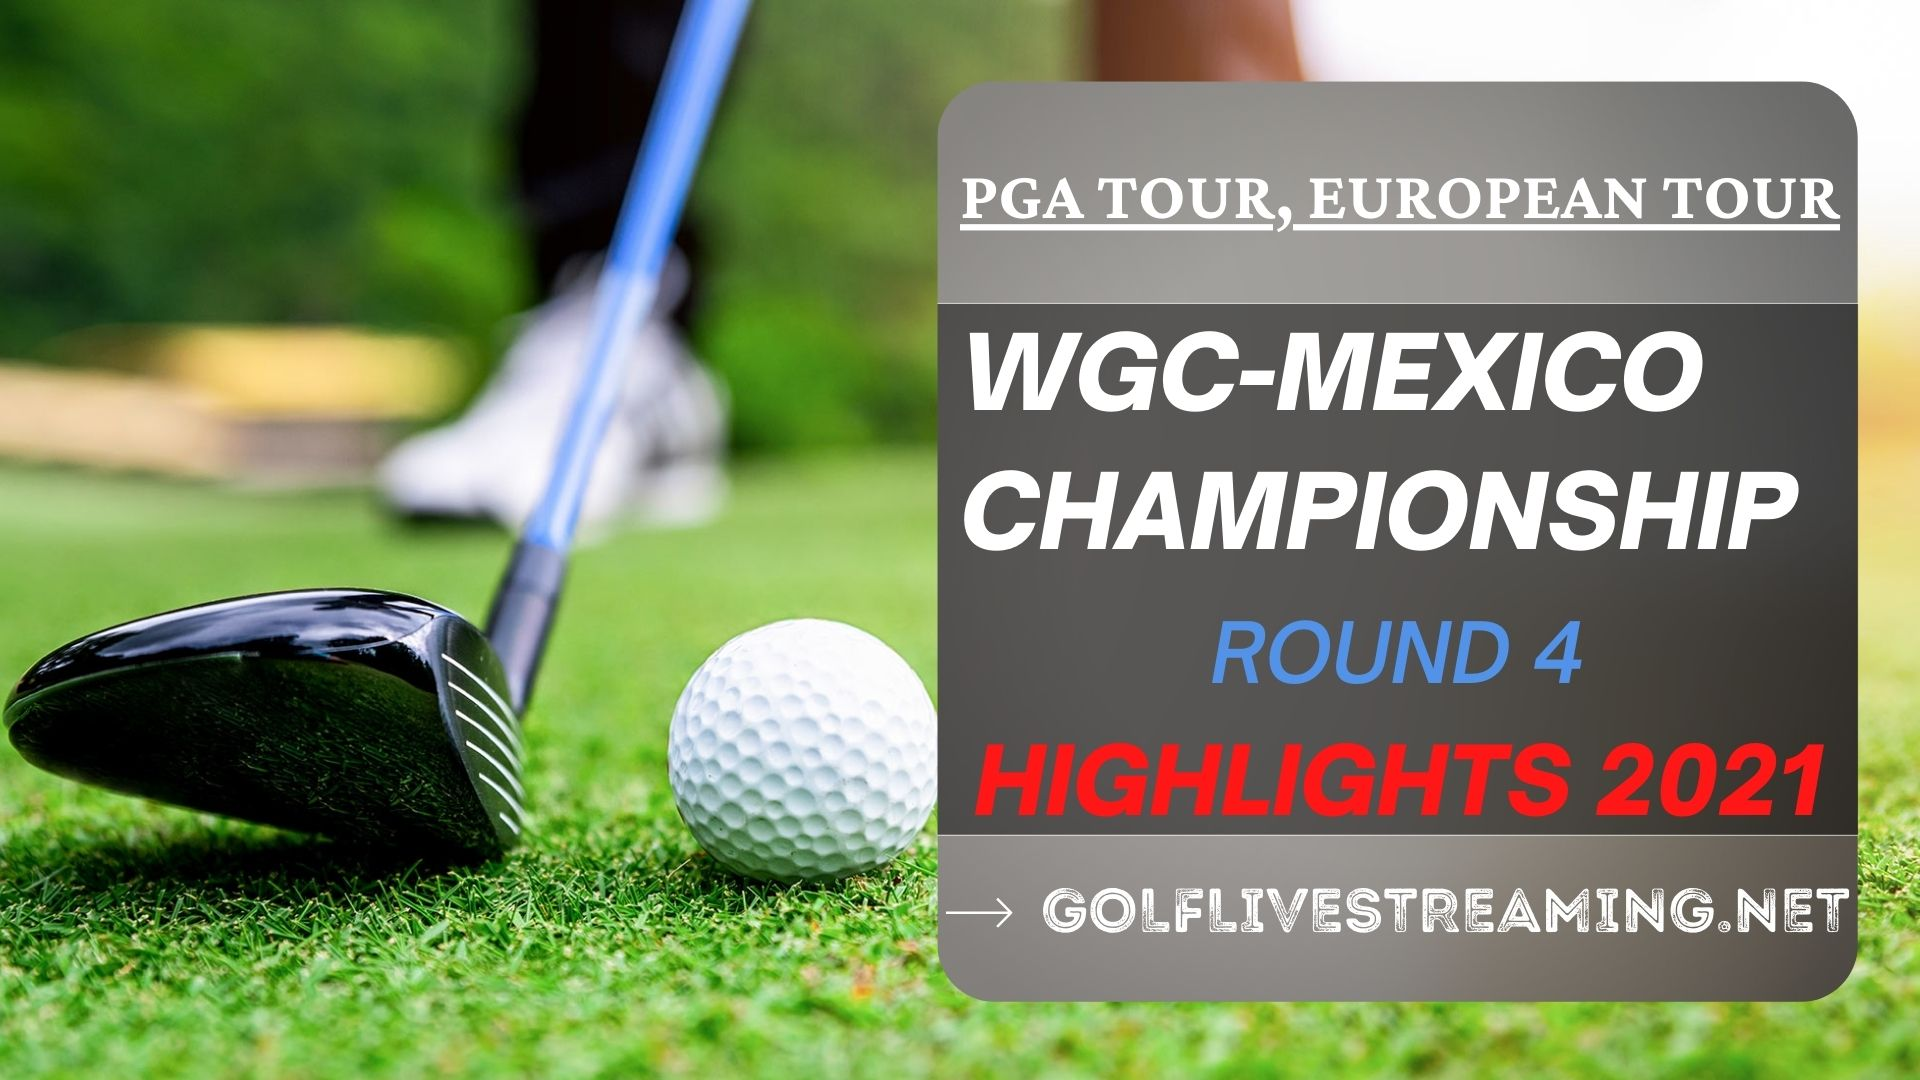 WGC Mexico Championship Rd 4 Highlights 2021 PGA Tour